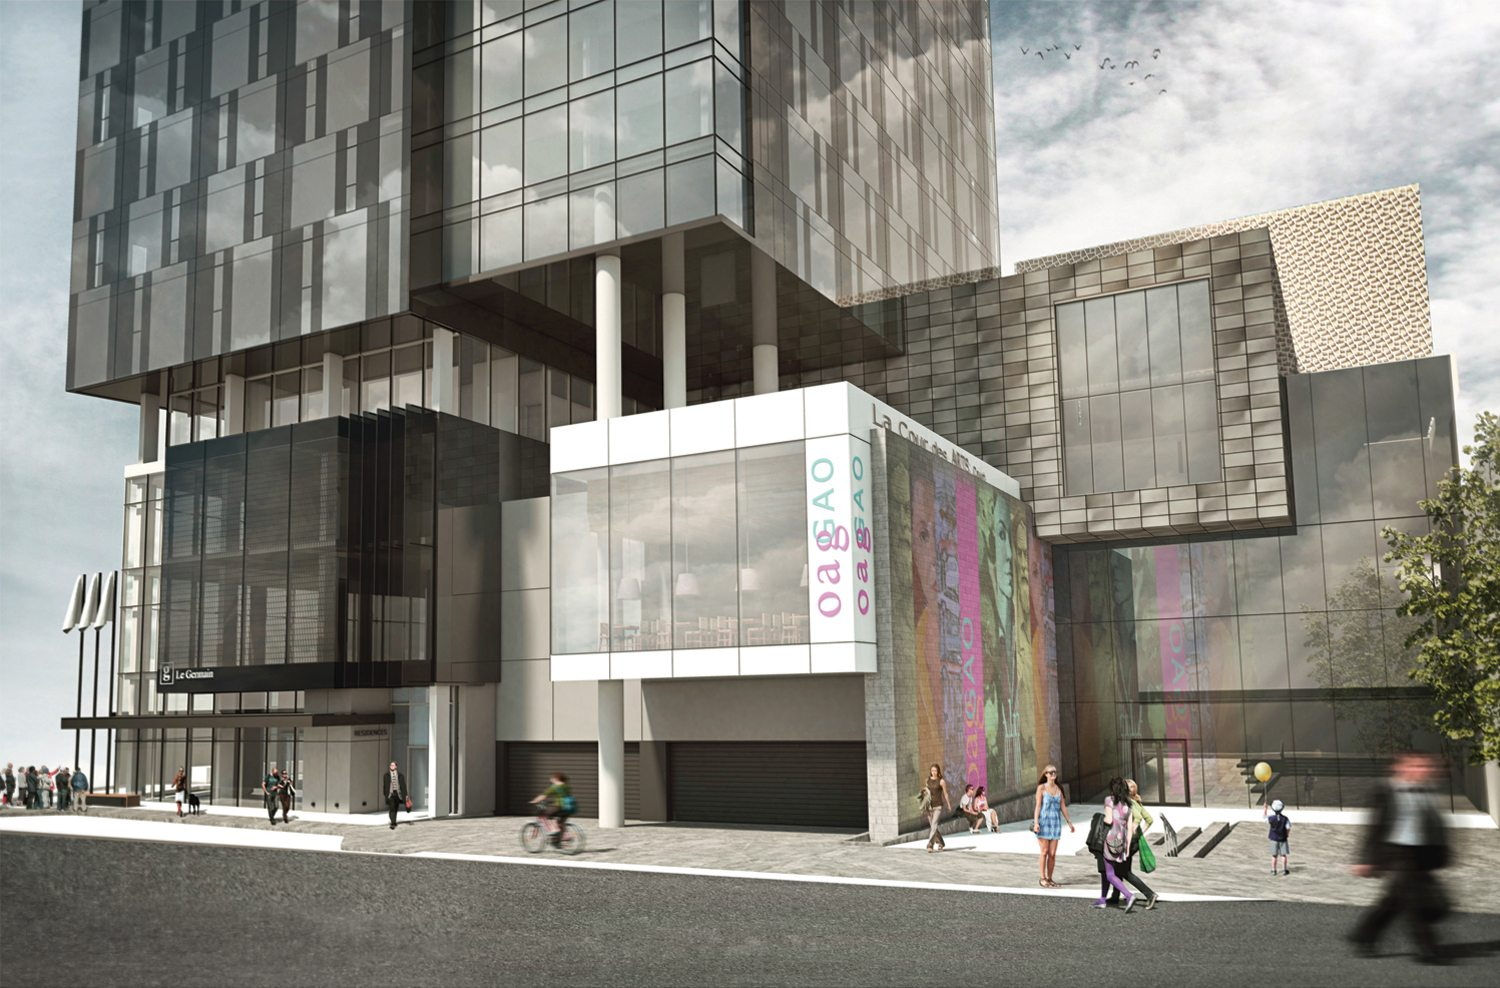 OAG's new entrance on Daly Avenue is modern and striking and its location between the University of Ottawa and the Rideau Centre will undoubtedly attract visitors. Photo: courtesy of OAG